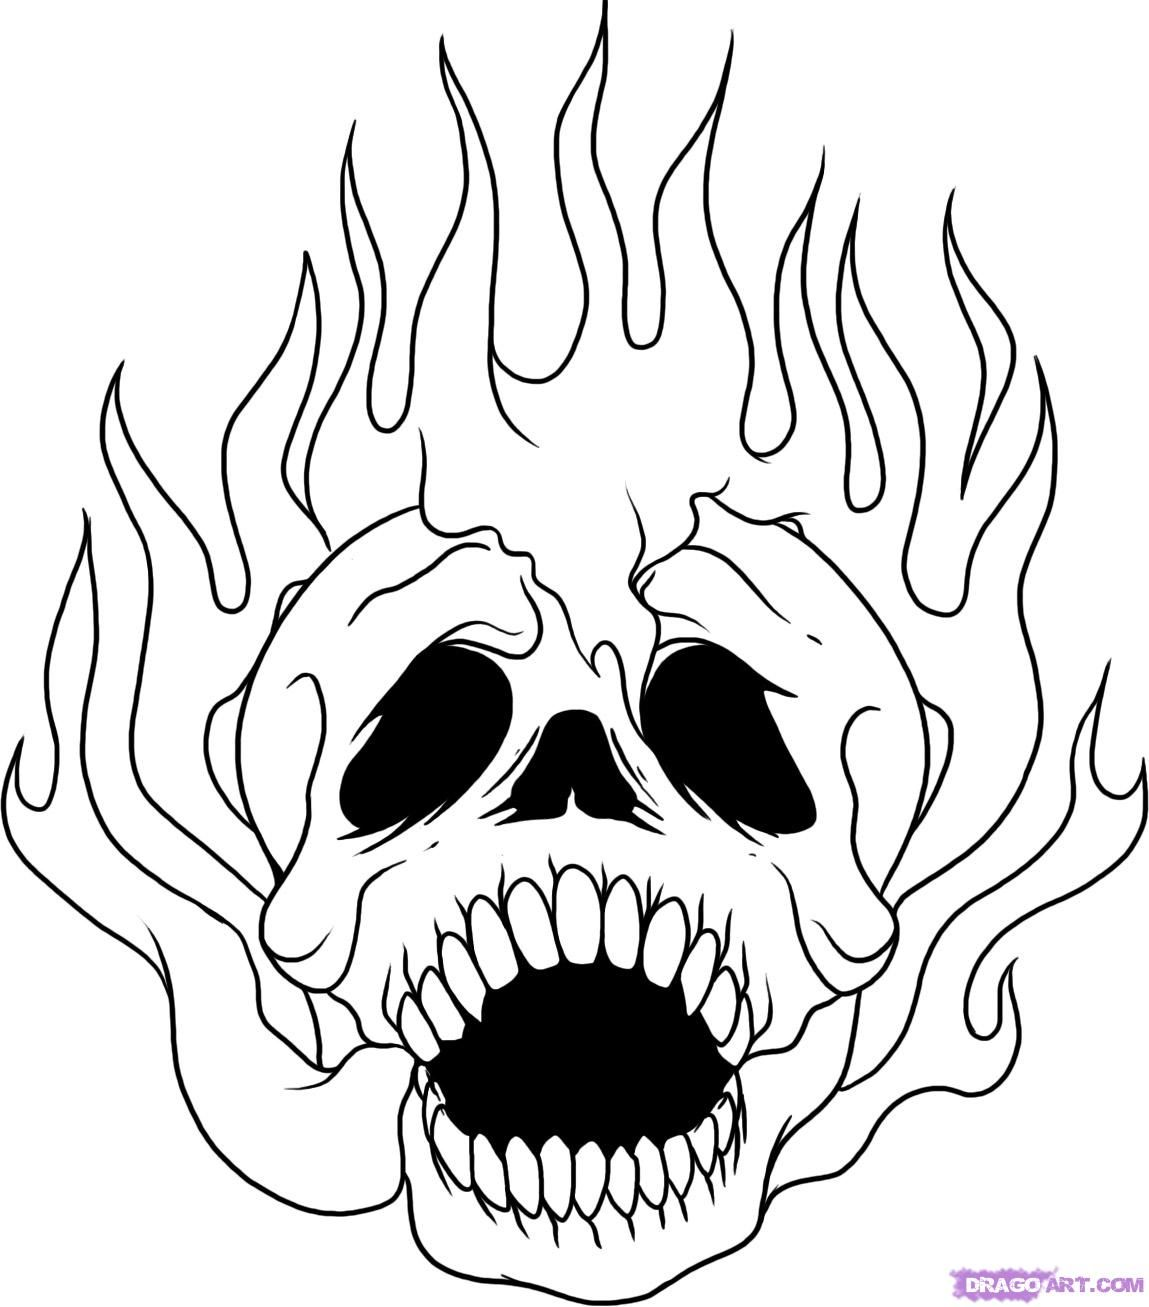 Coloring pages skulls - Coloring Pages Of Skulls High Quality Coloring Pages